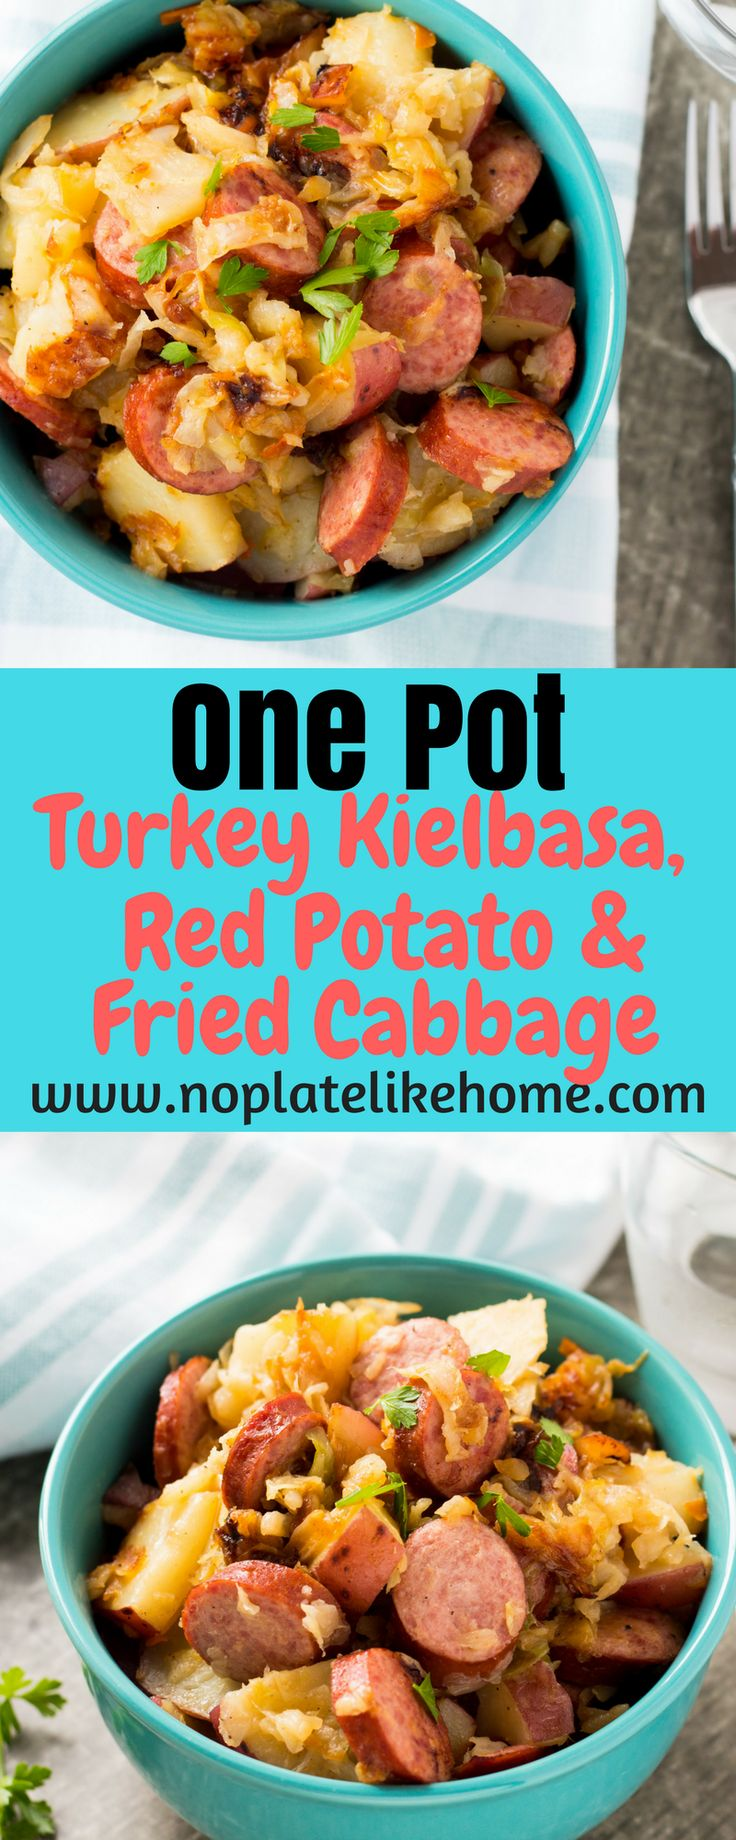 This hearty and tasty One Pot Turkey Kielbasa, Red Potato & Fried Cabbage is an easy weeknight meal for your meat and potatoes loving family. This recipe saves prep time by using Dole Cole Slaw mix. Add this complete meal to your dinner rotation or meal plan. Pin for later.